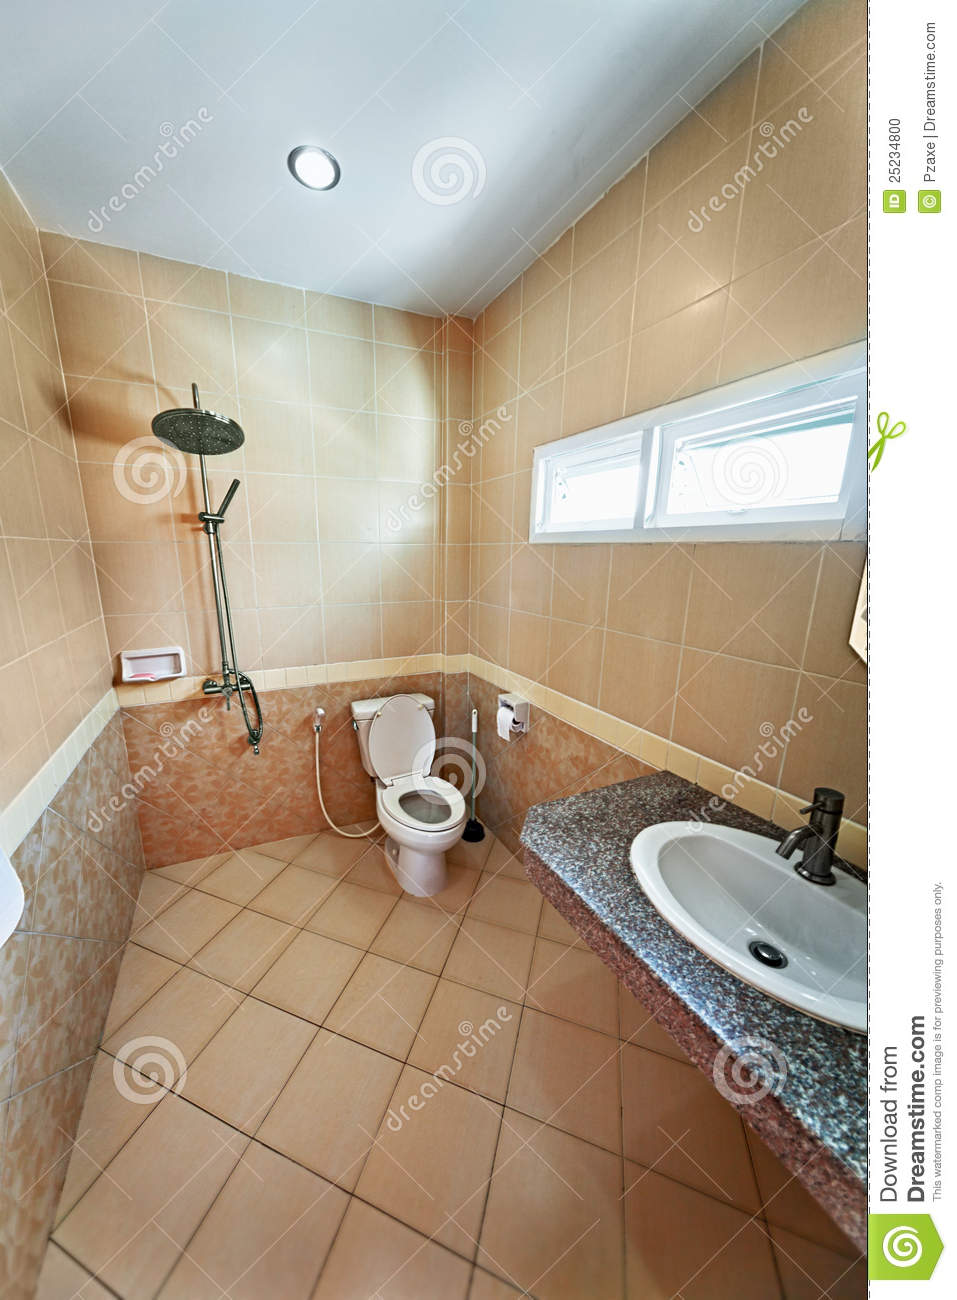 Iinterior of beige bathroom with shower stock photo for Petite salle de bain moderne design